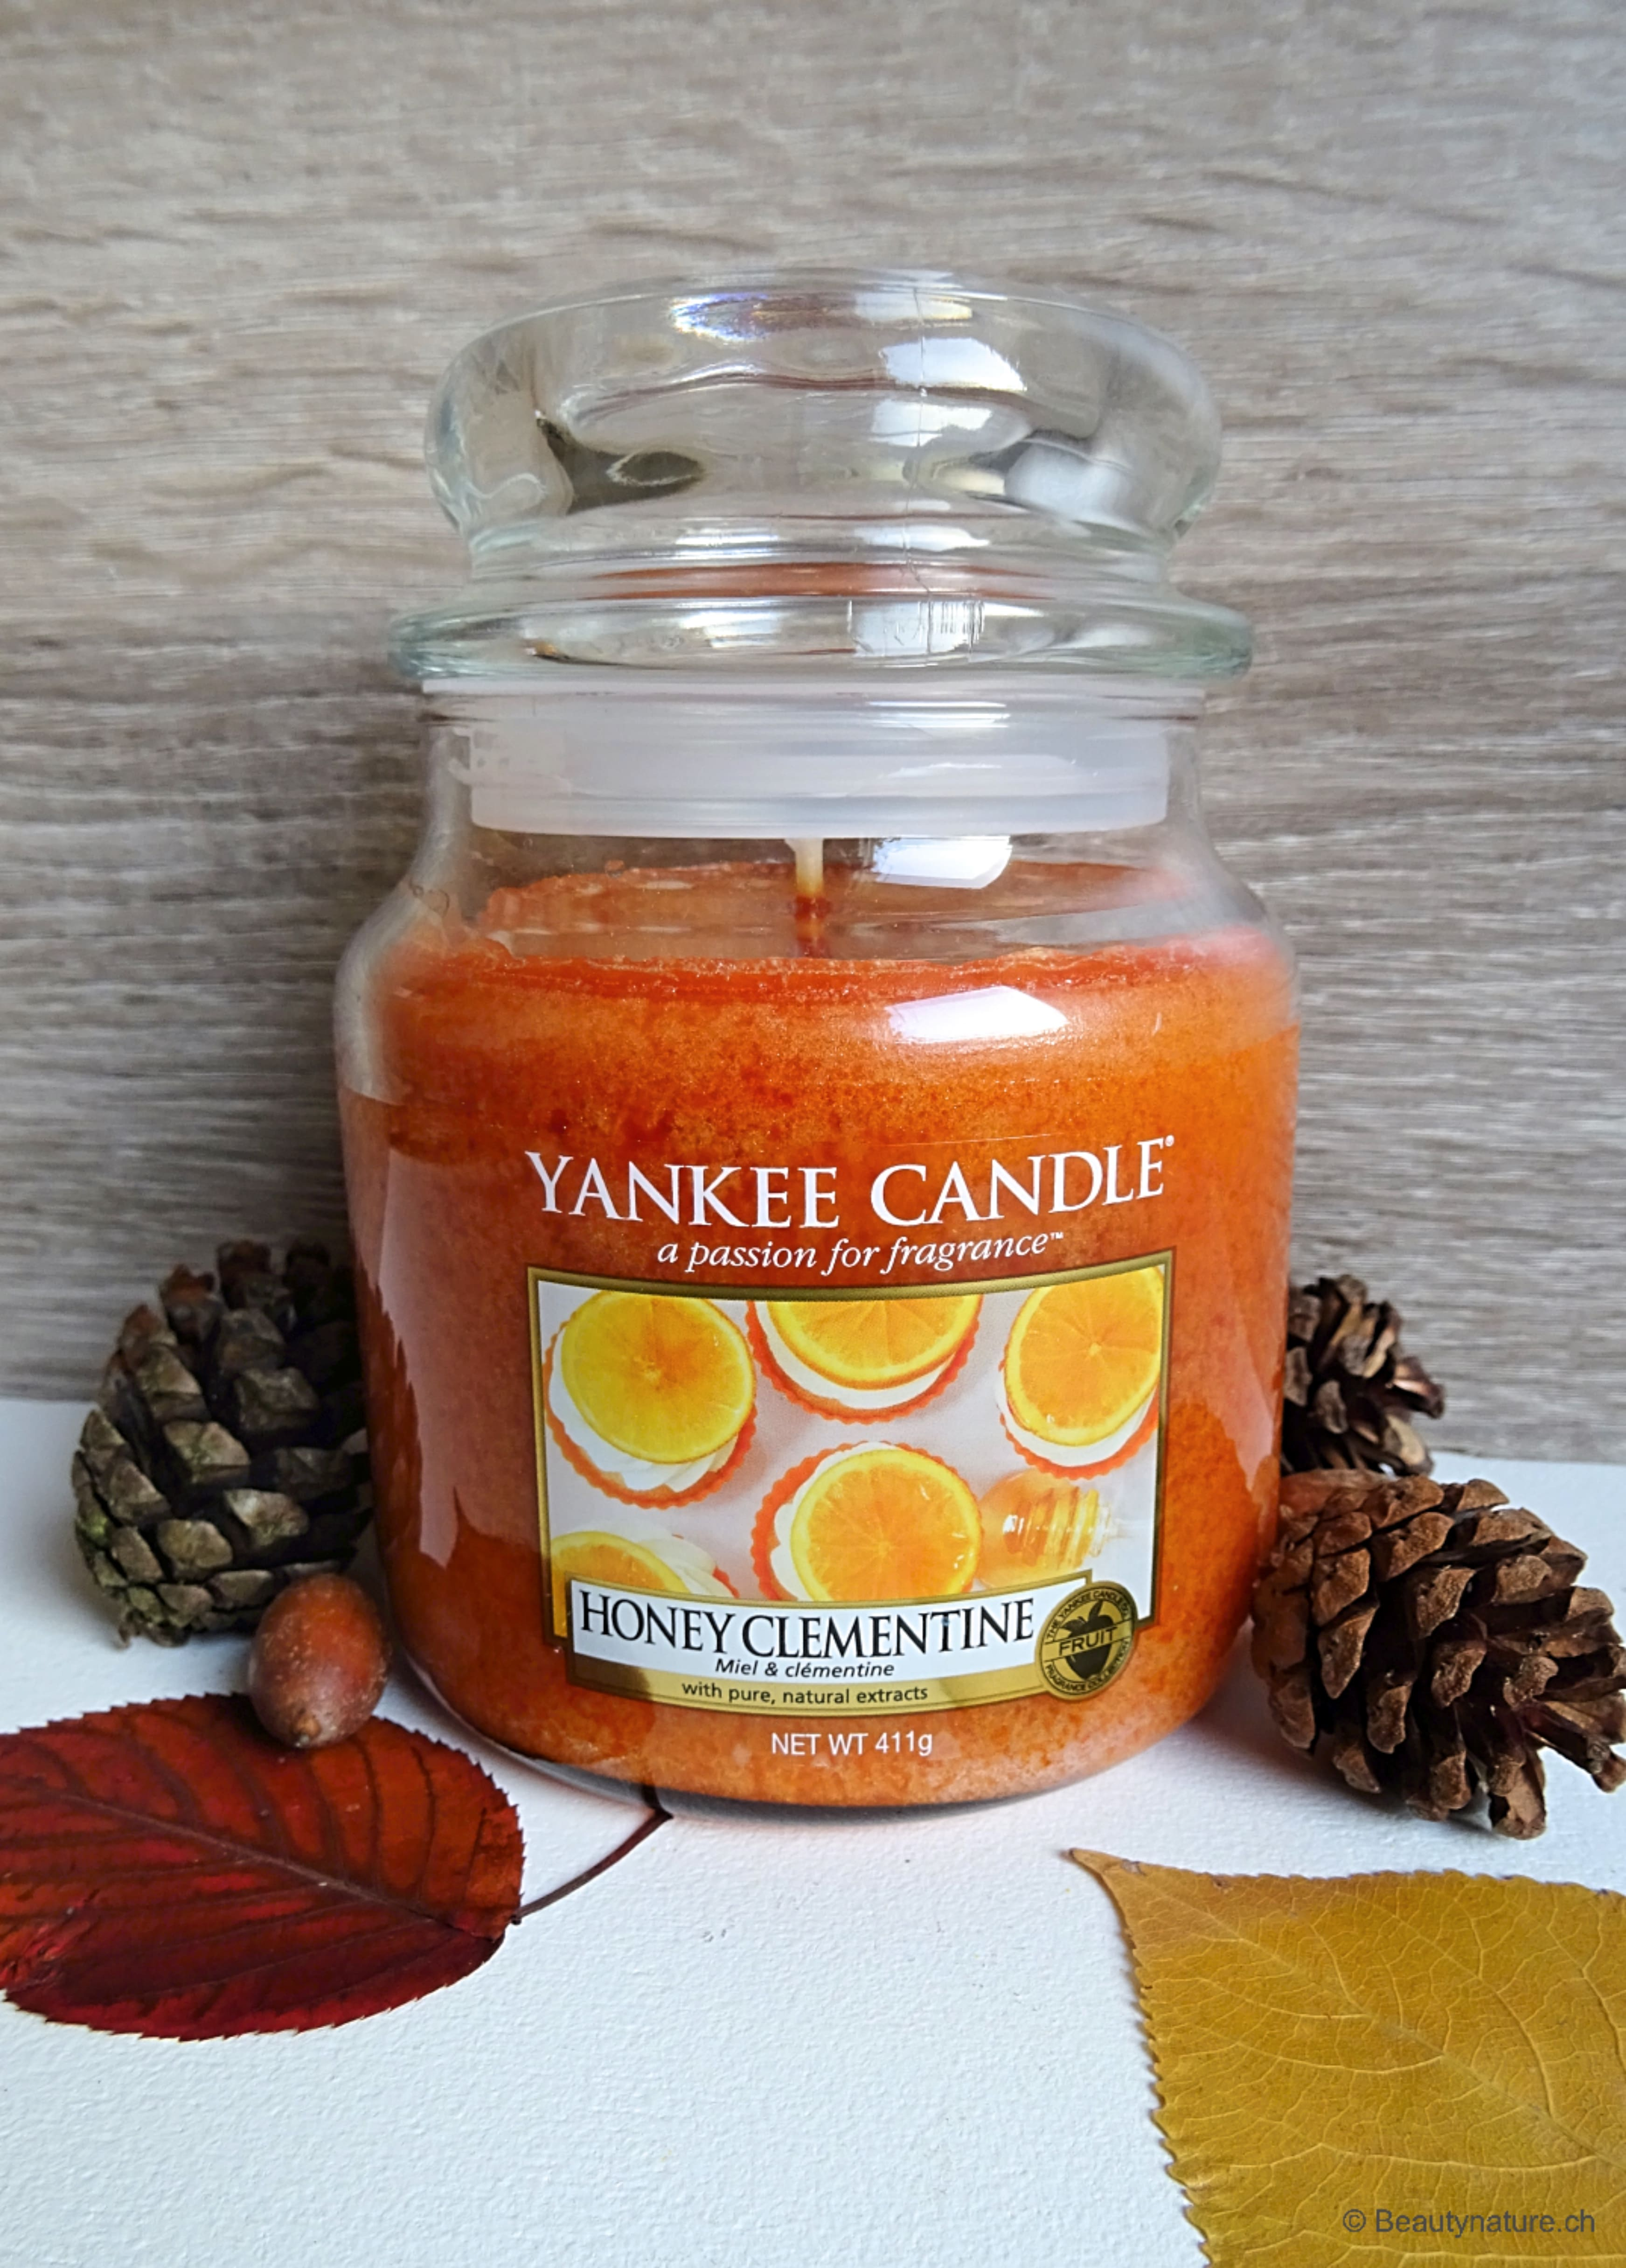 Yankee Candle - Honey Clementine